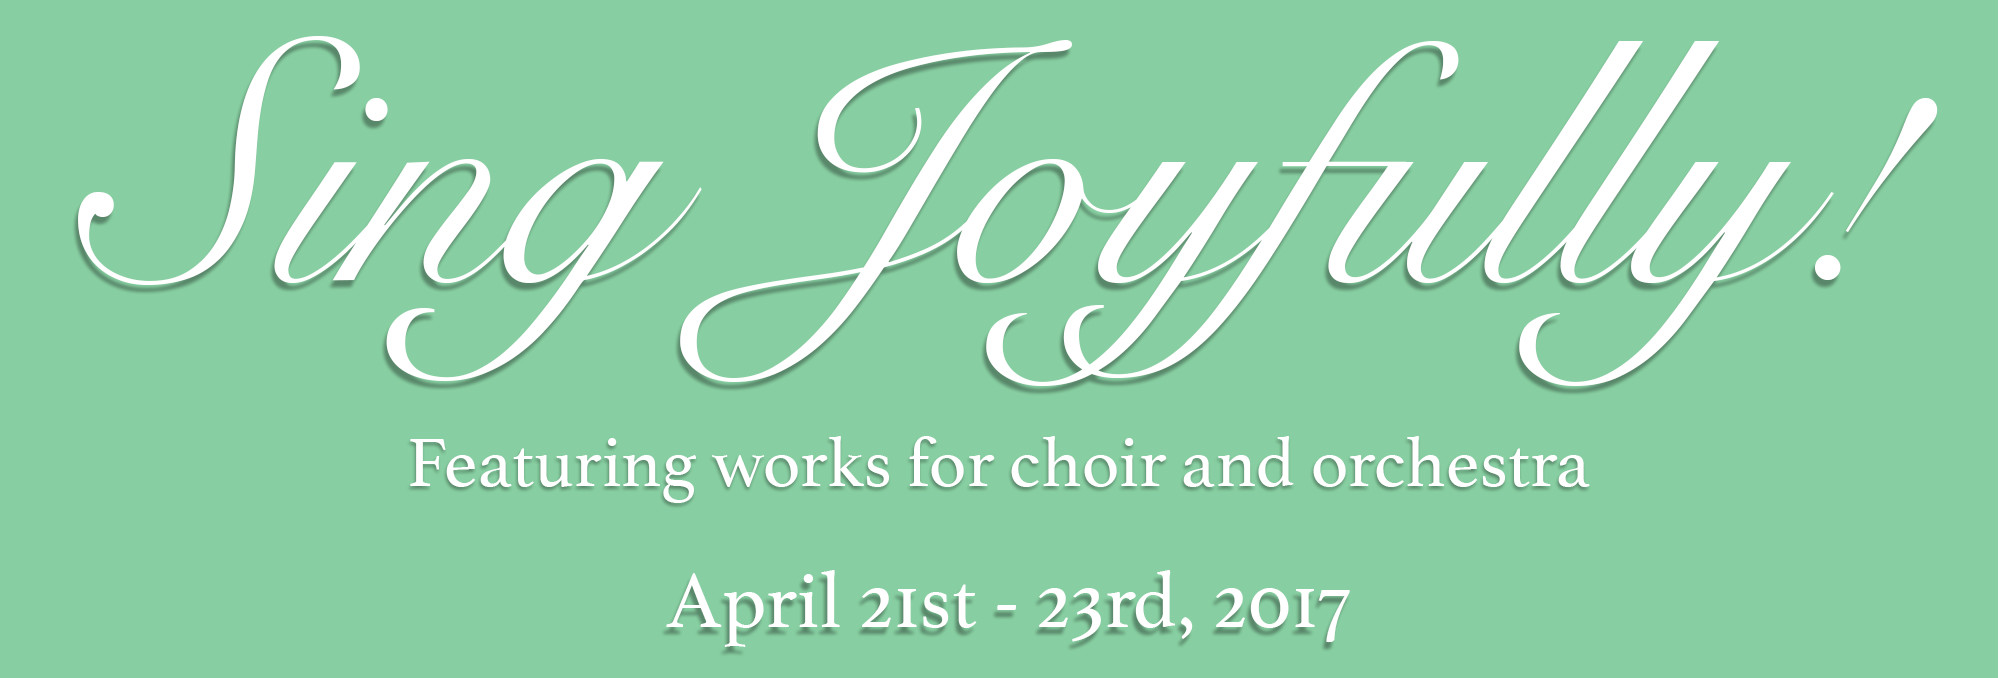 CLICK HERE FOR CONCERT FLYER. Joined by orchestral musicians, the Choral Society proudly presents works for choir, orchestra, and SATB soloists. Friday, April 21st, 7:30 pm - First Baptist Newport News, 12716 Warwick Blvd. Newport News, VA Saturday, April 22nd, 7:30 pm - Dr. Mary T. Christian Auditorium & Theatre, Thomas Nelson Community College, Templin Hall, 99 Thomas Nelson Dr, Hampton, VA Sunday, April 23rd, 4:00 pm - Trinity Lutheran Church,  6807 Huntington Ave, Newport News, VA 23607 BUY TICKETS